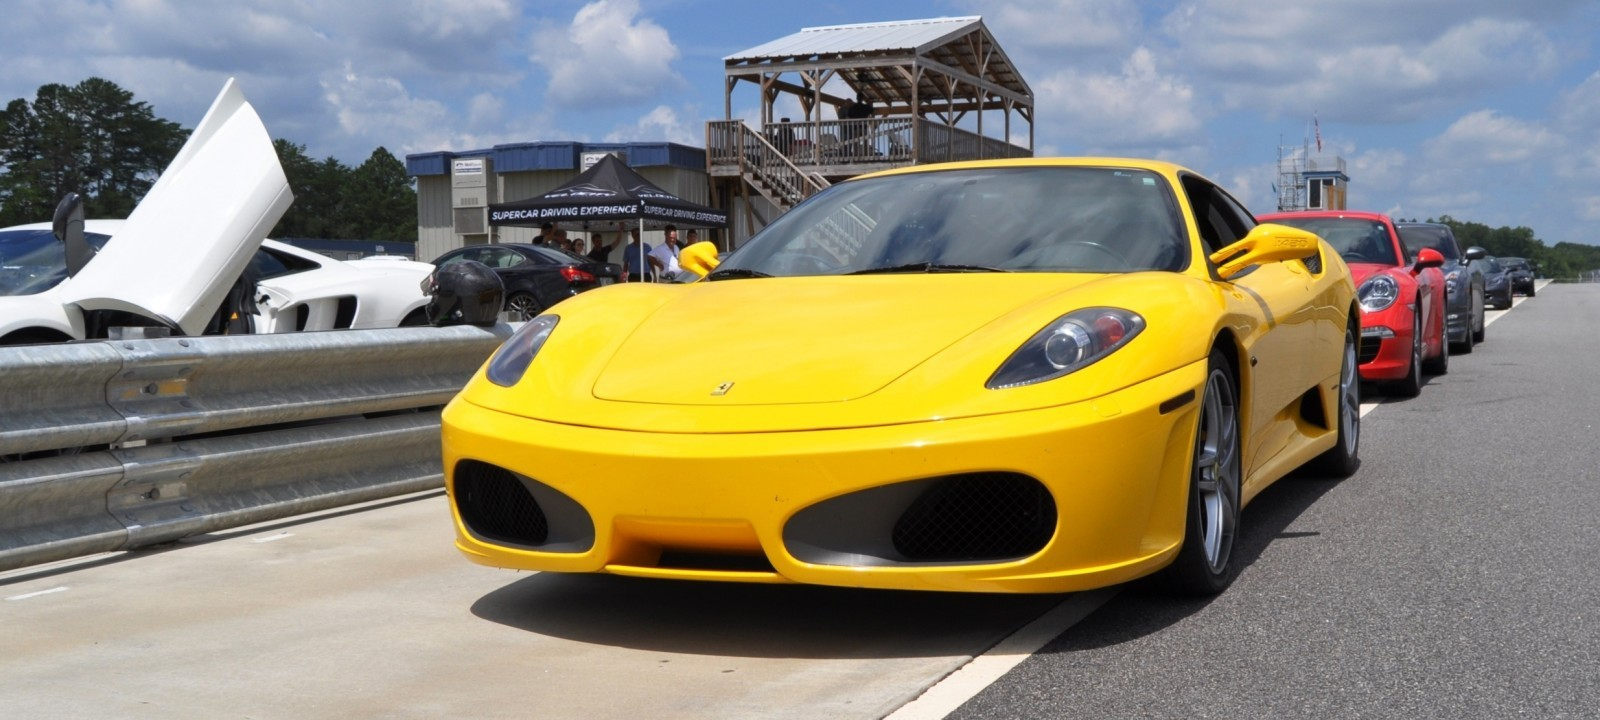 Beating the Supercar Paradox - 2007 Ferrari F430 at Velocity Motorsports Supercar Track Drive 26